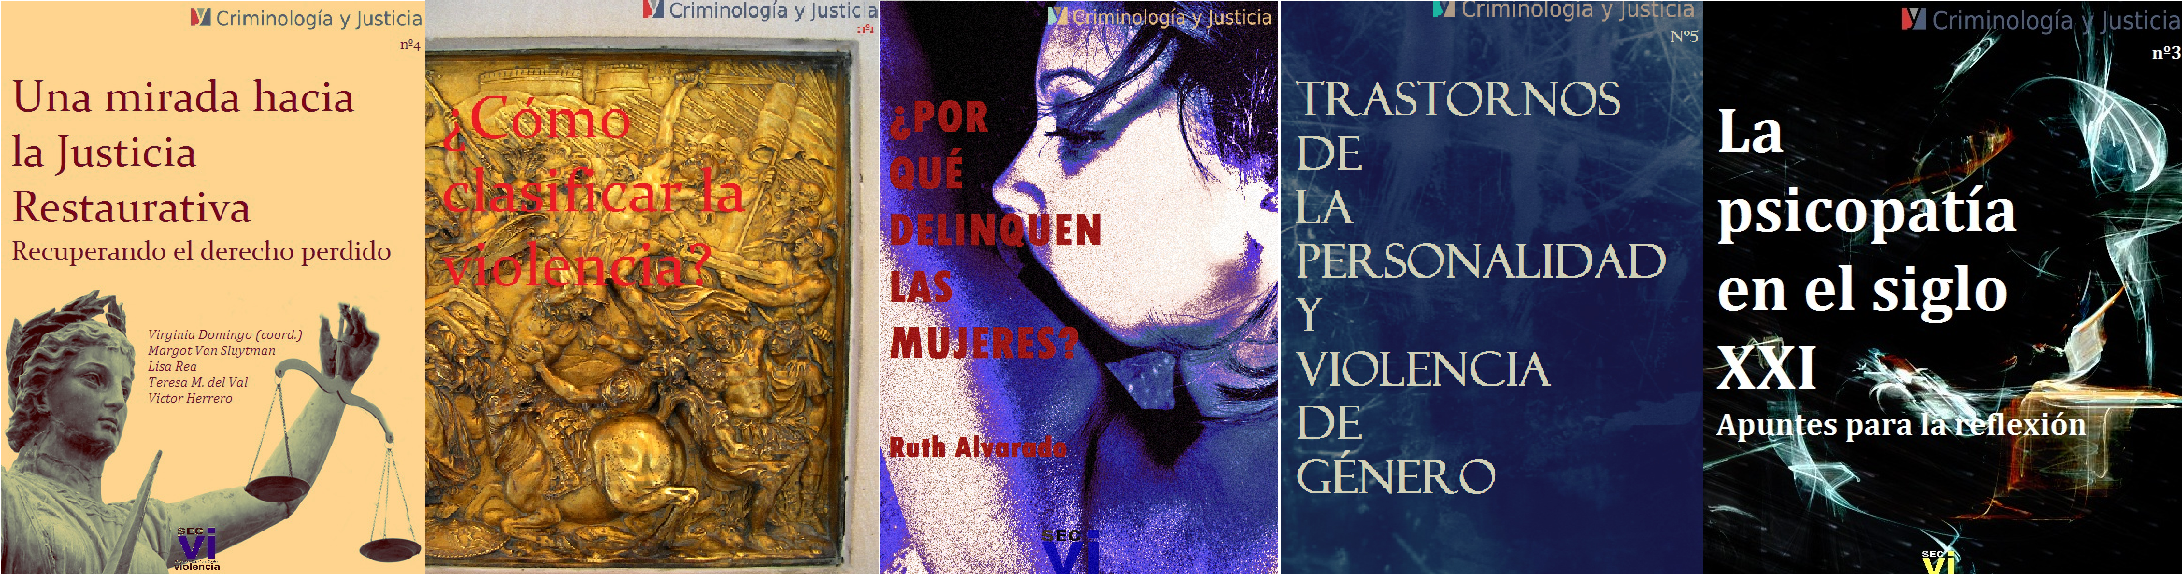 CONSIGUE NUESTRO PACK DE 5 EBOOKS EN EXCLUSIVA EN NUESTRA TIENDA POR 11,90 EUROS!